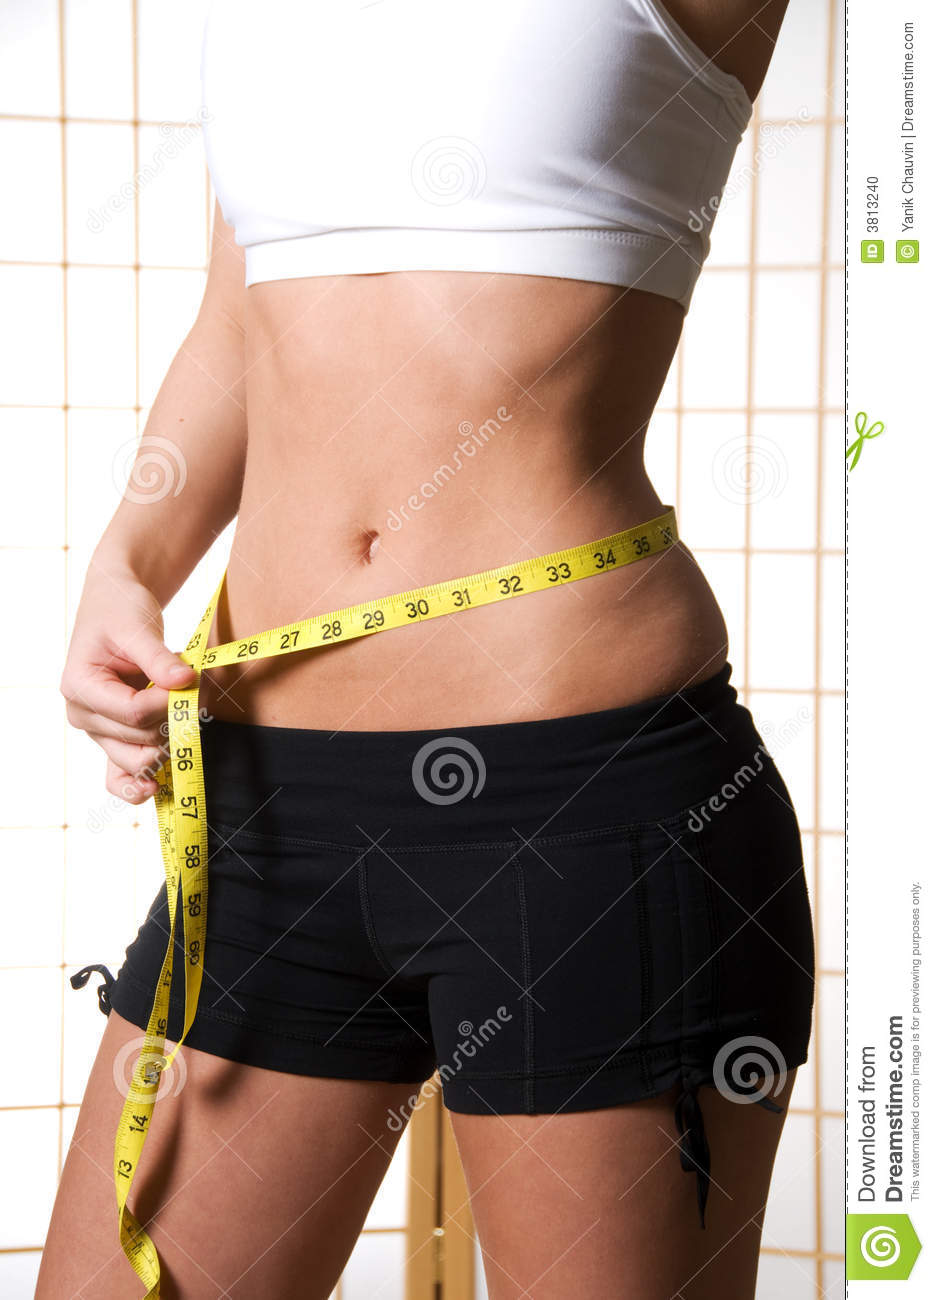 Sexy Waist Stock Photo - Image 3813240-9611